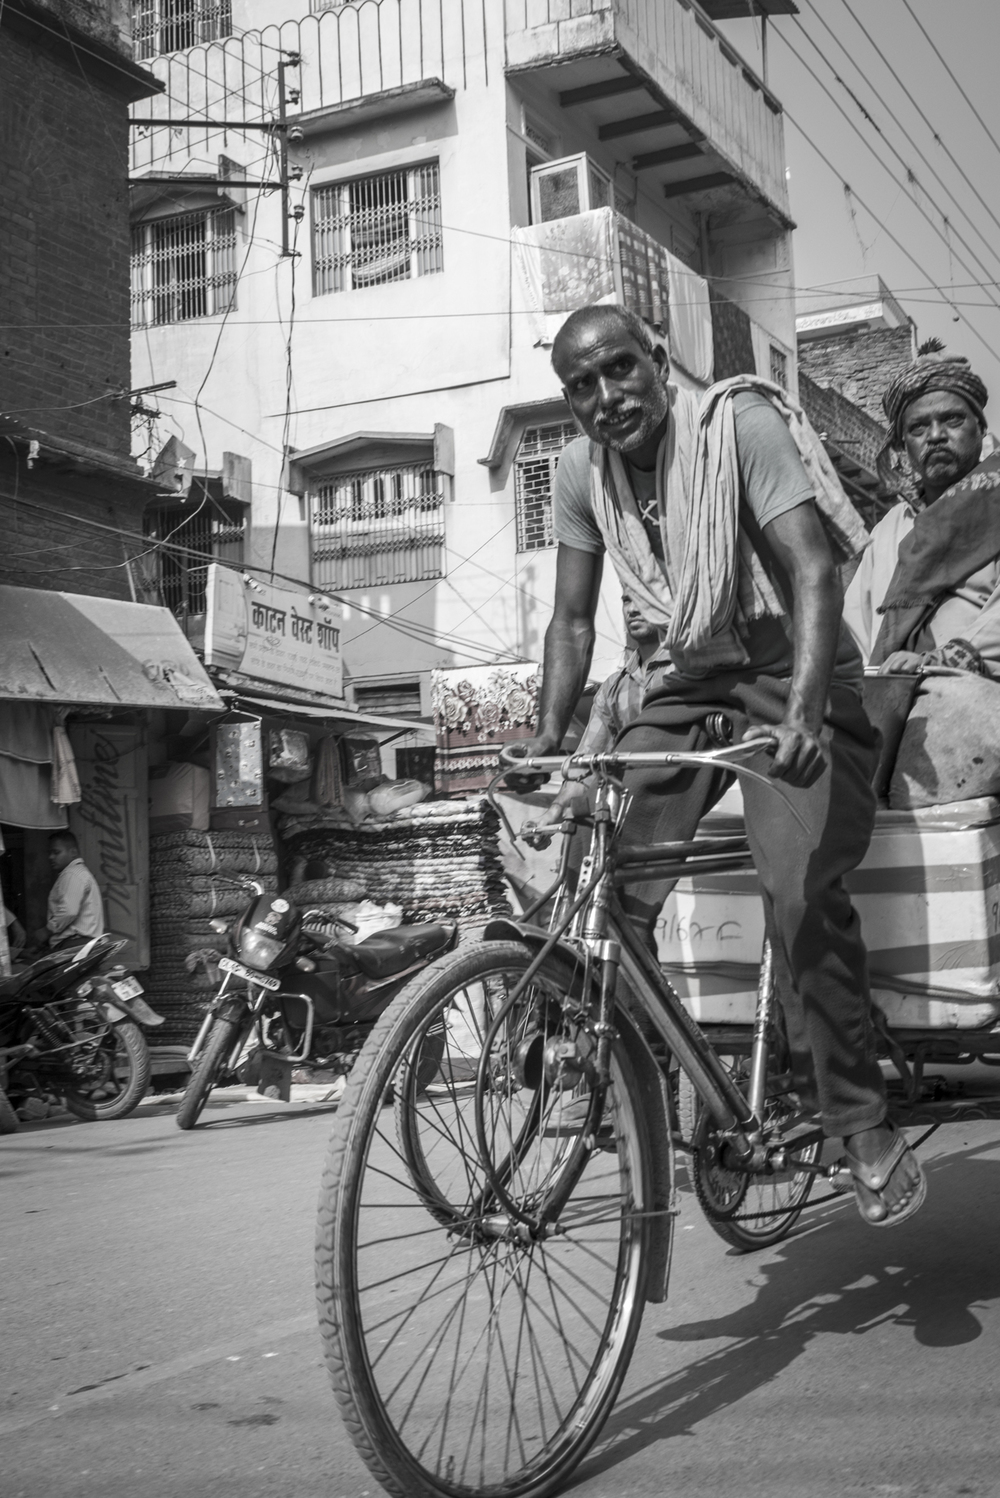 An Indian man trying to make a living.